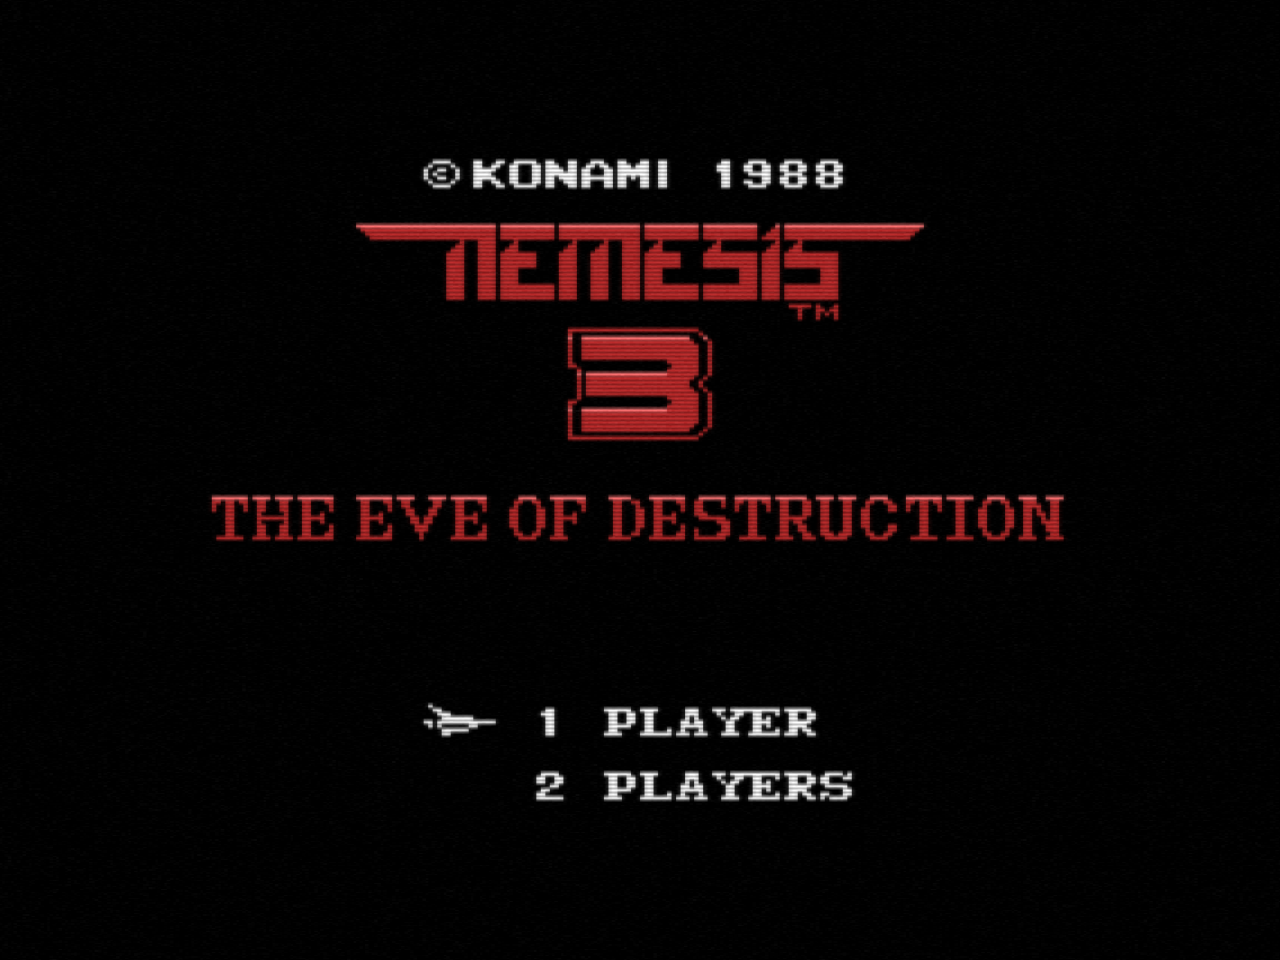 Nemesis 3: The Eve of Destruction